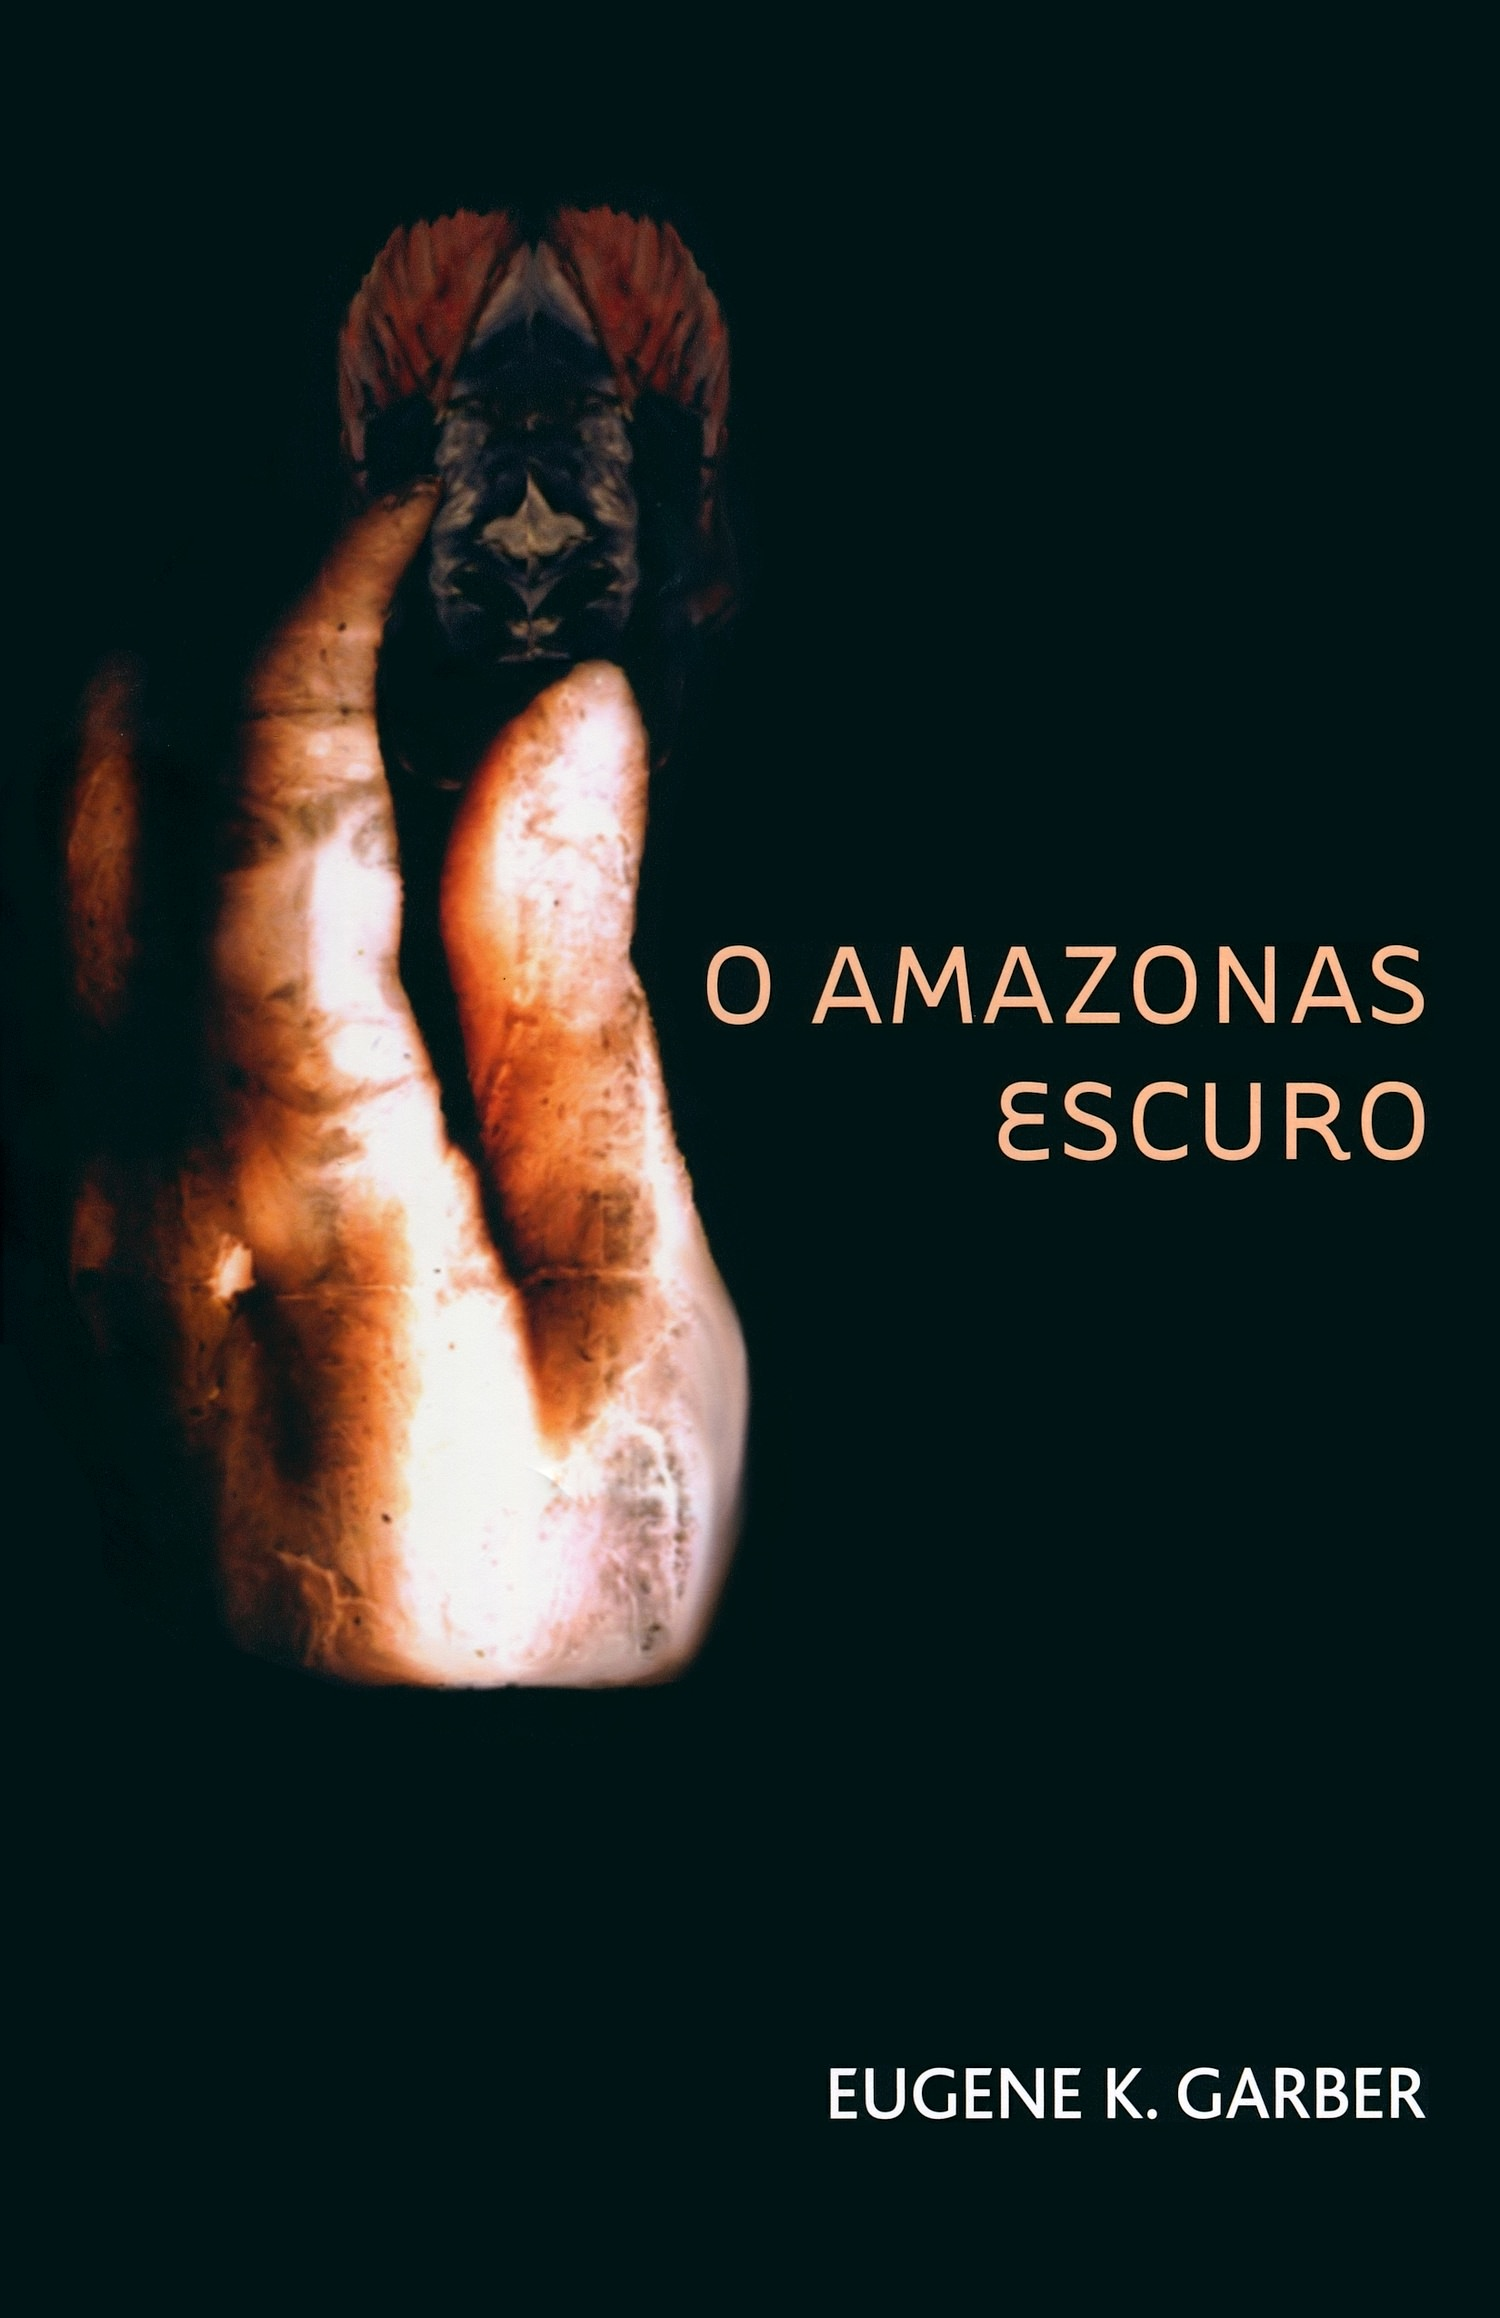 O Amazonas Escuro, Novel by Eugene K Garber, cover photo